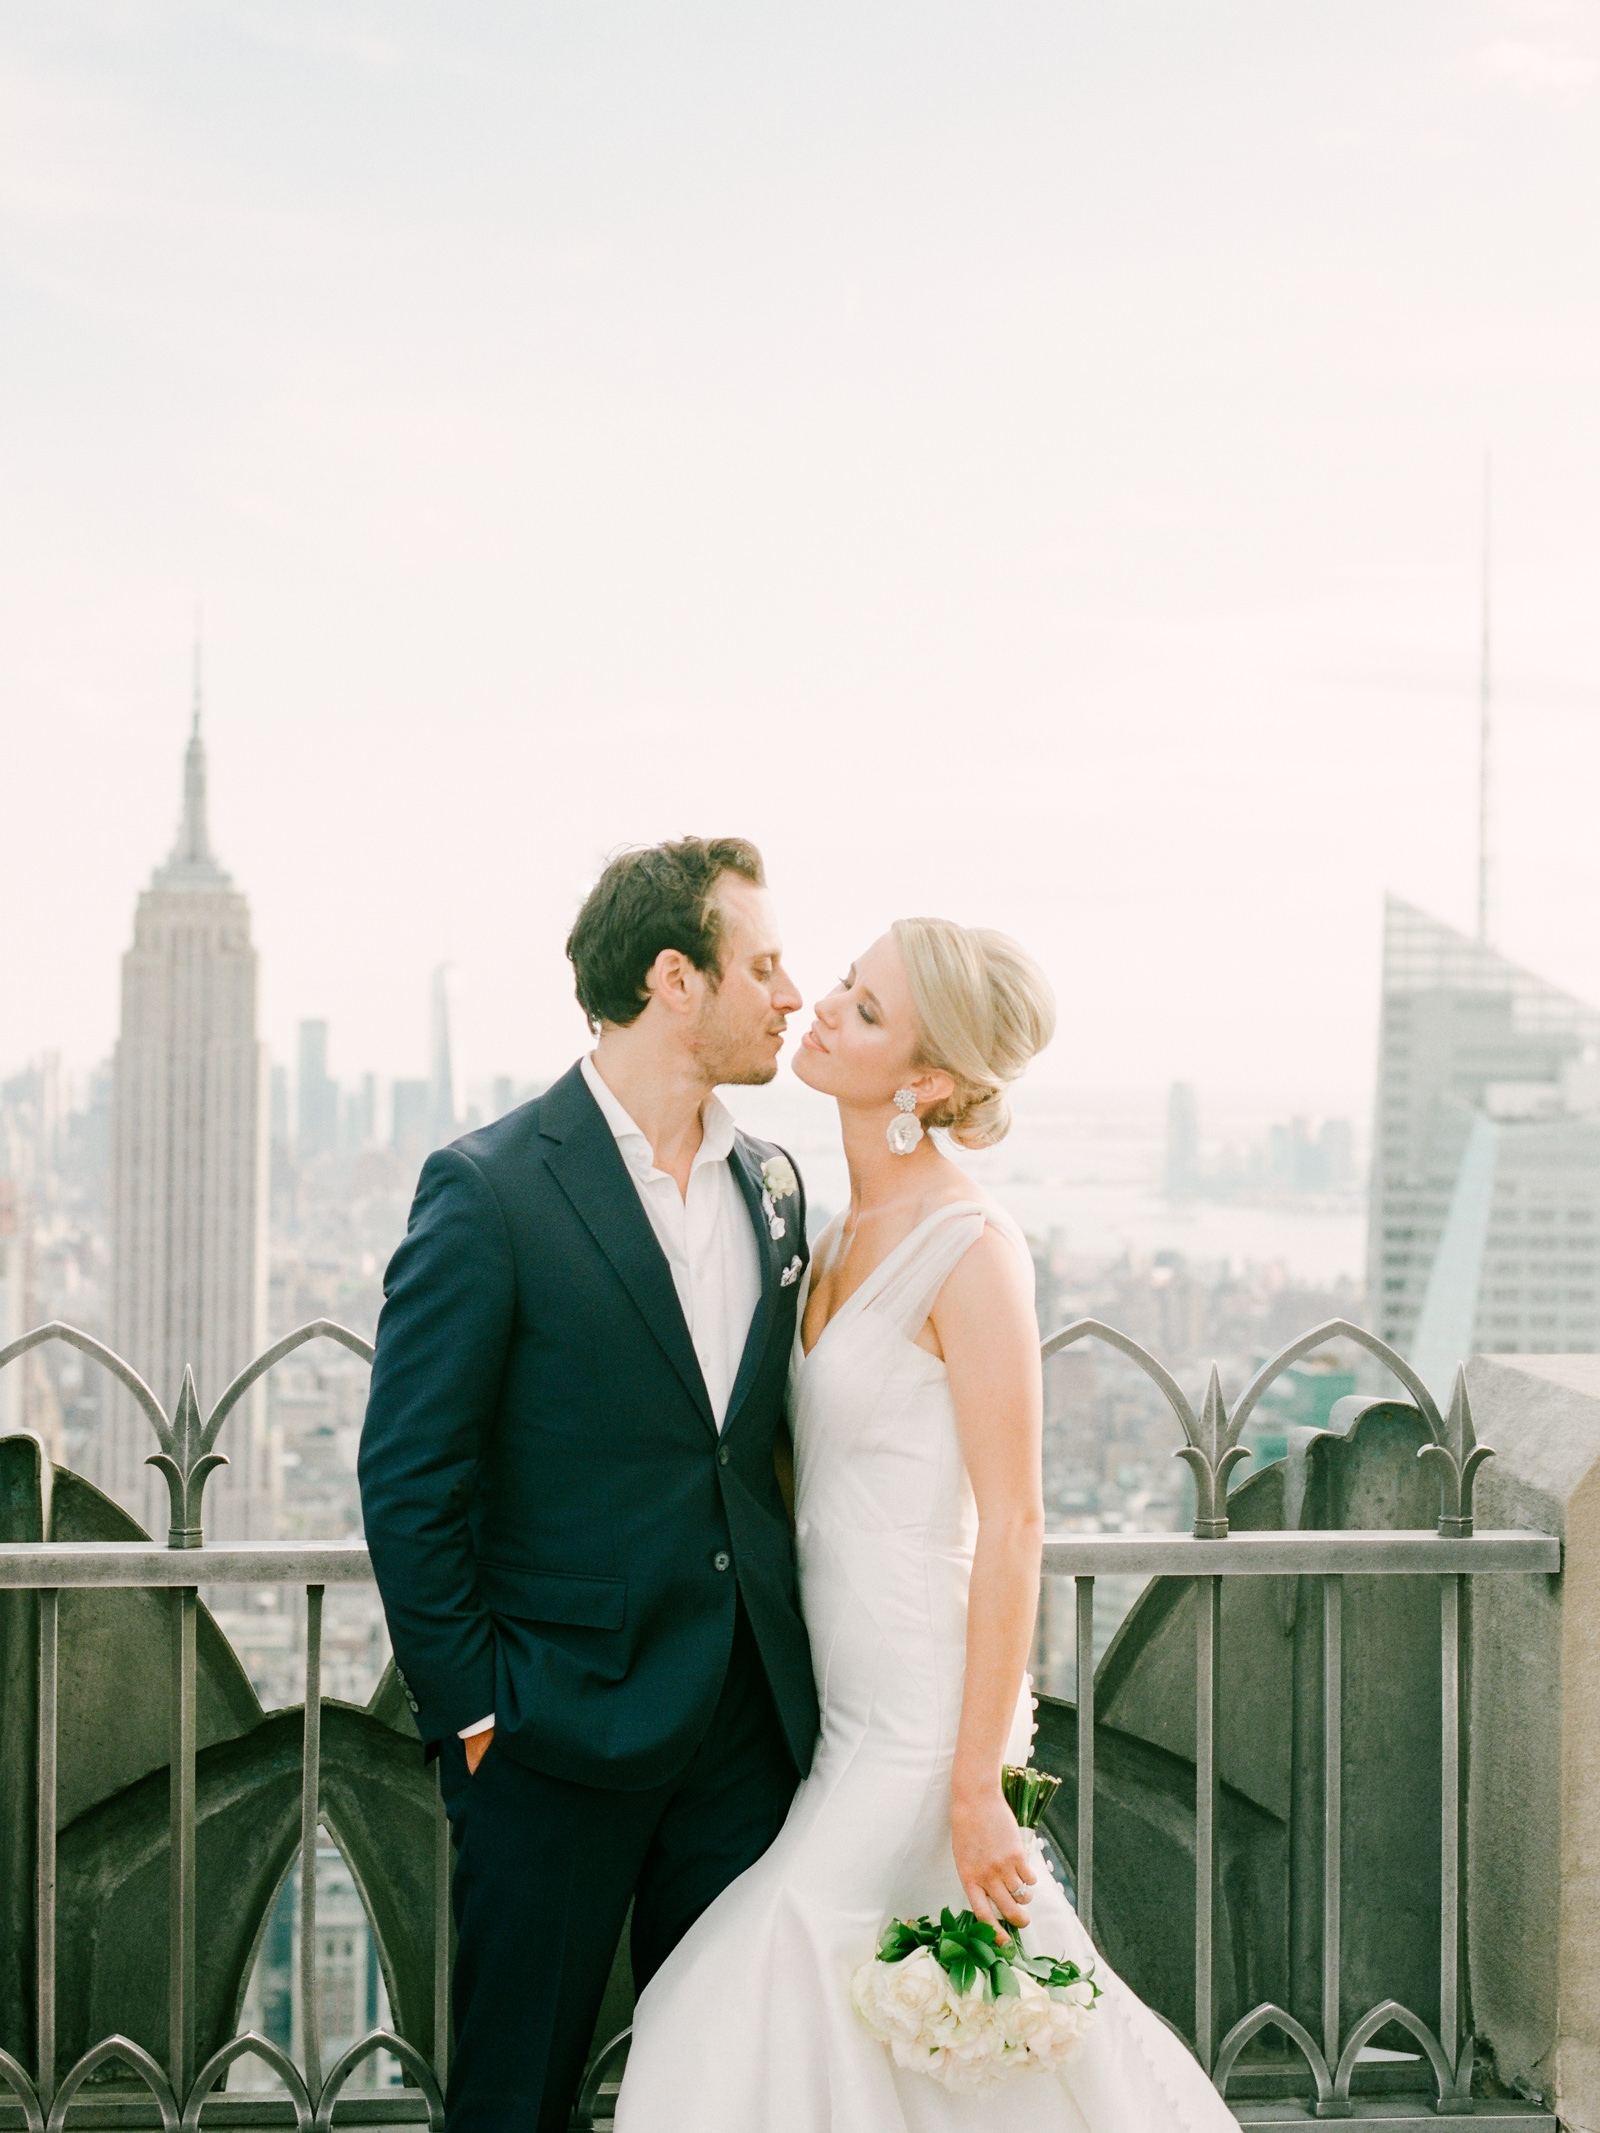 Intimate-NYC_wedding_ by Tanya Isaeva-159.jpg